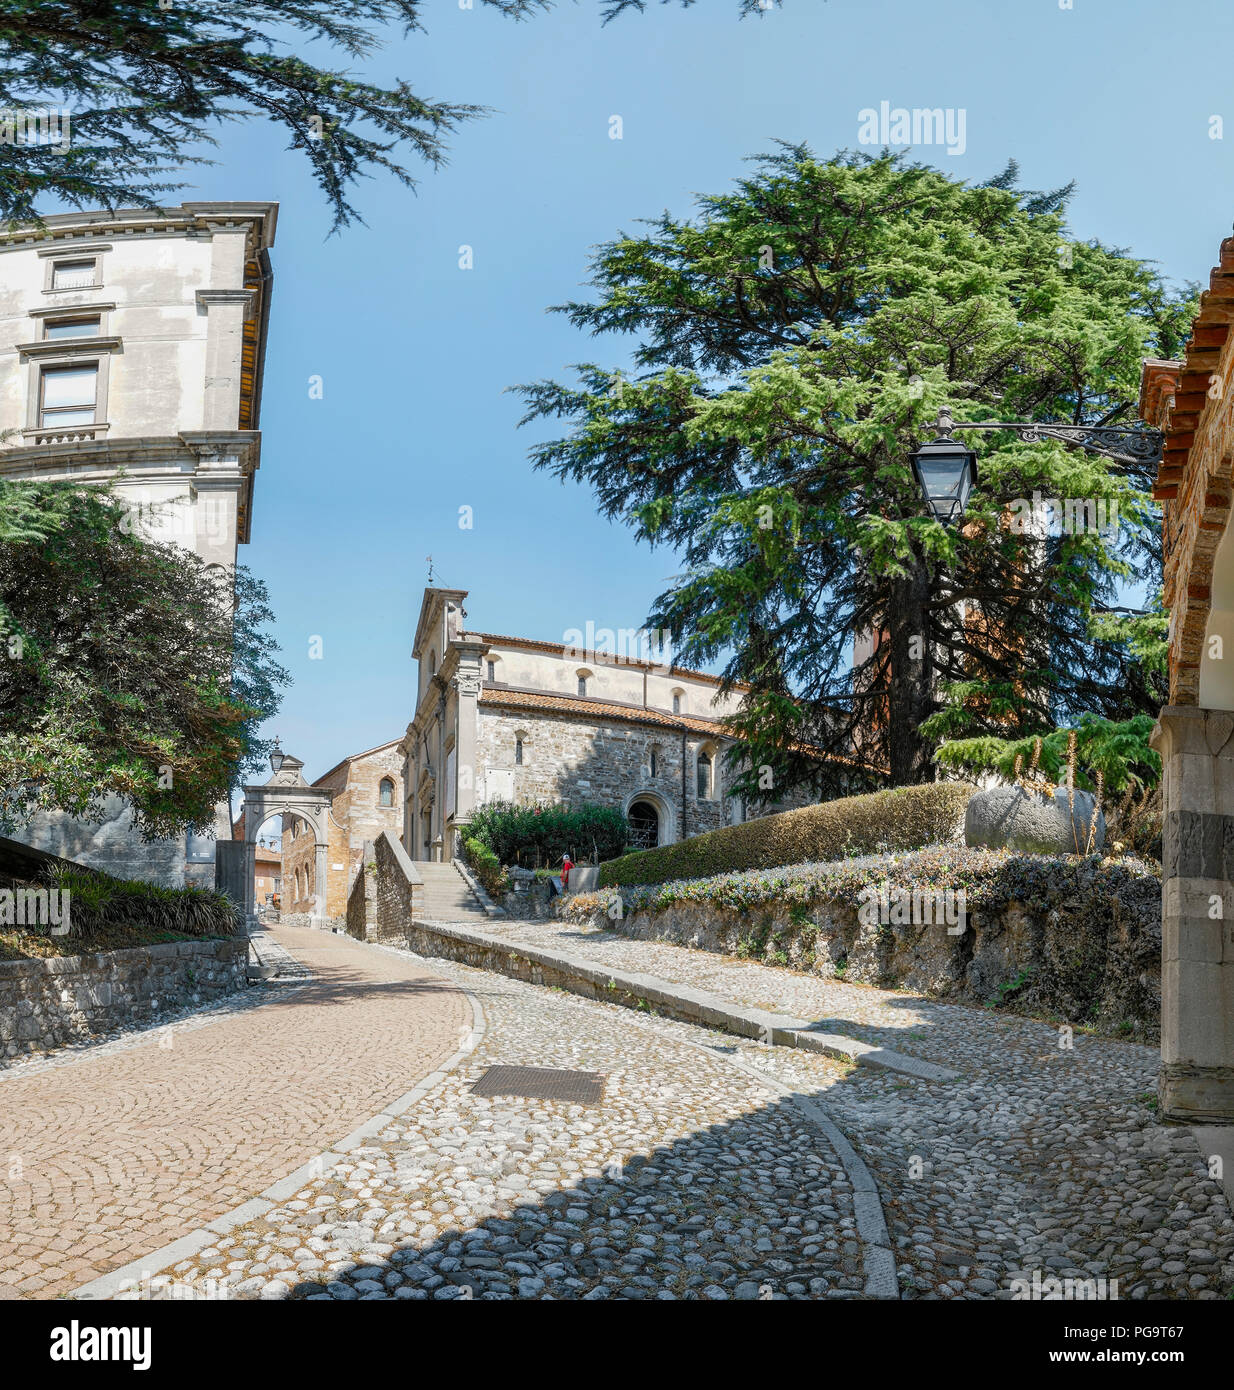 the ascent of the hill leading to the castle of Udine, Italy - Stock Image